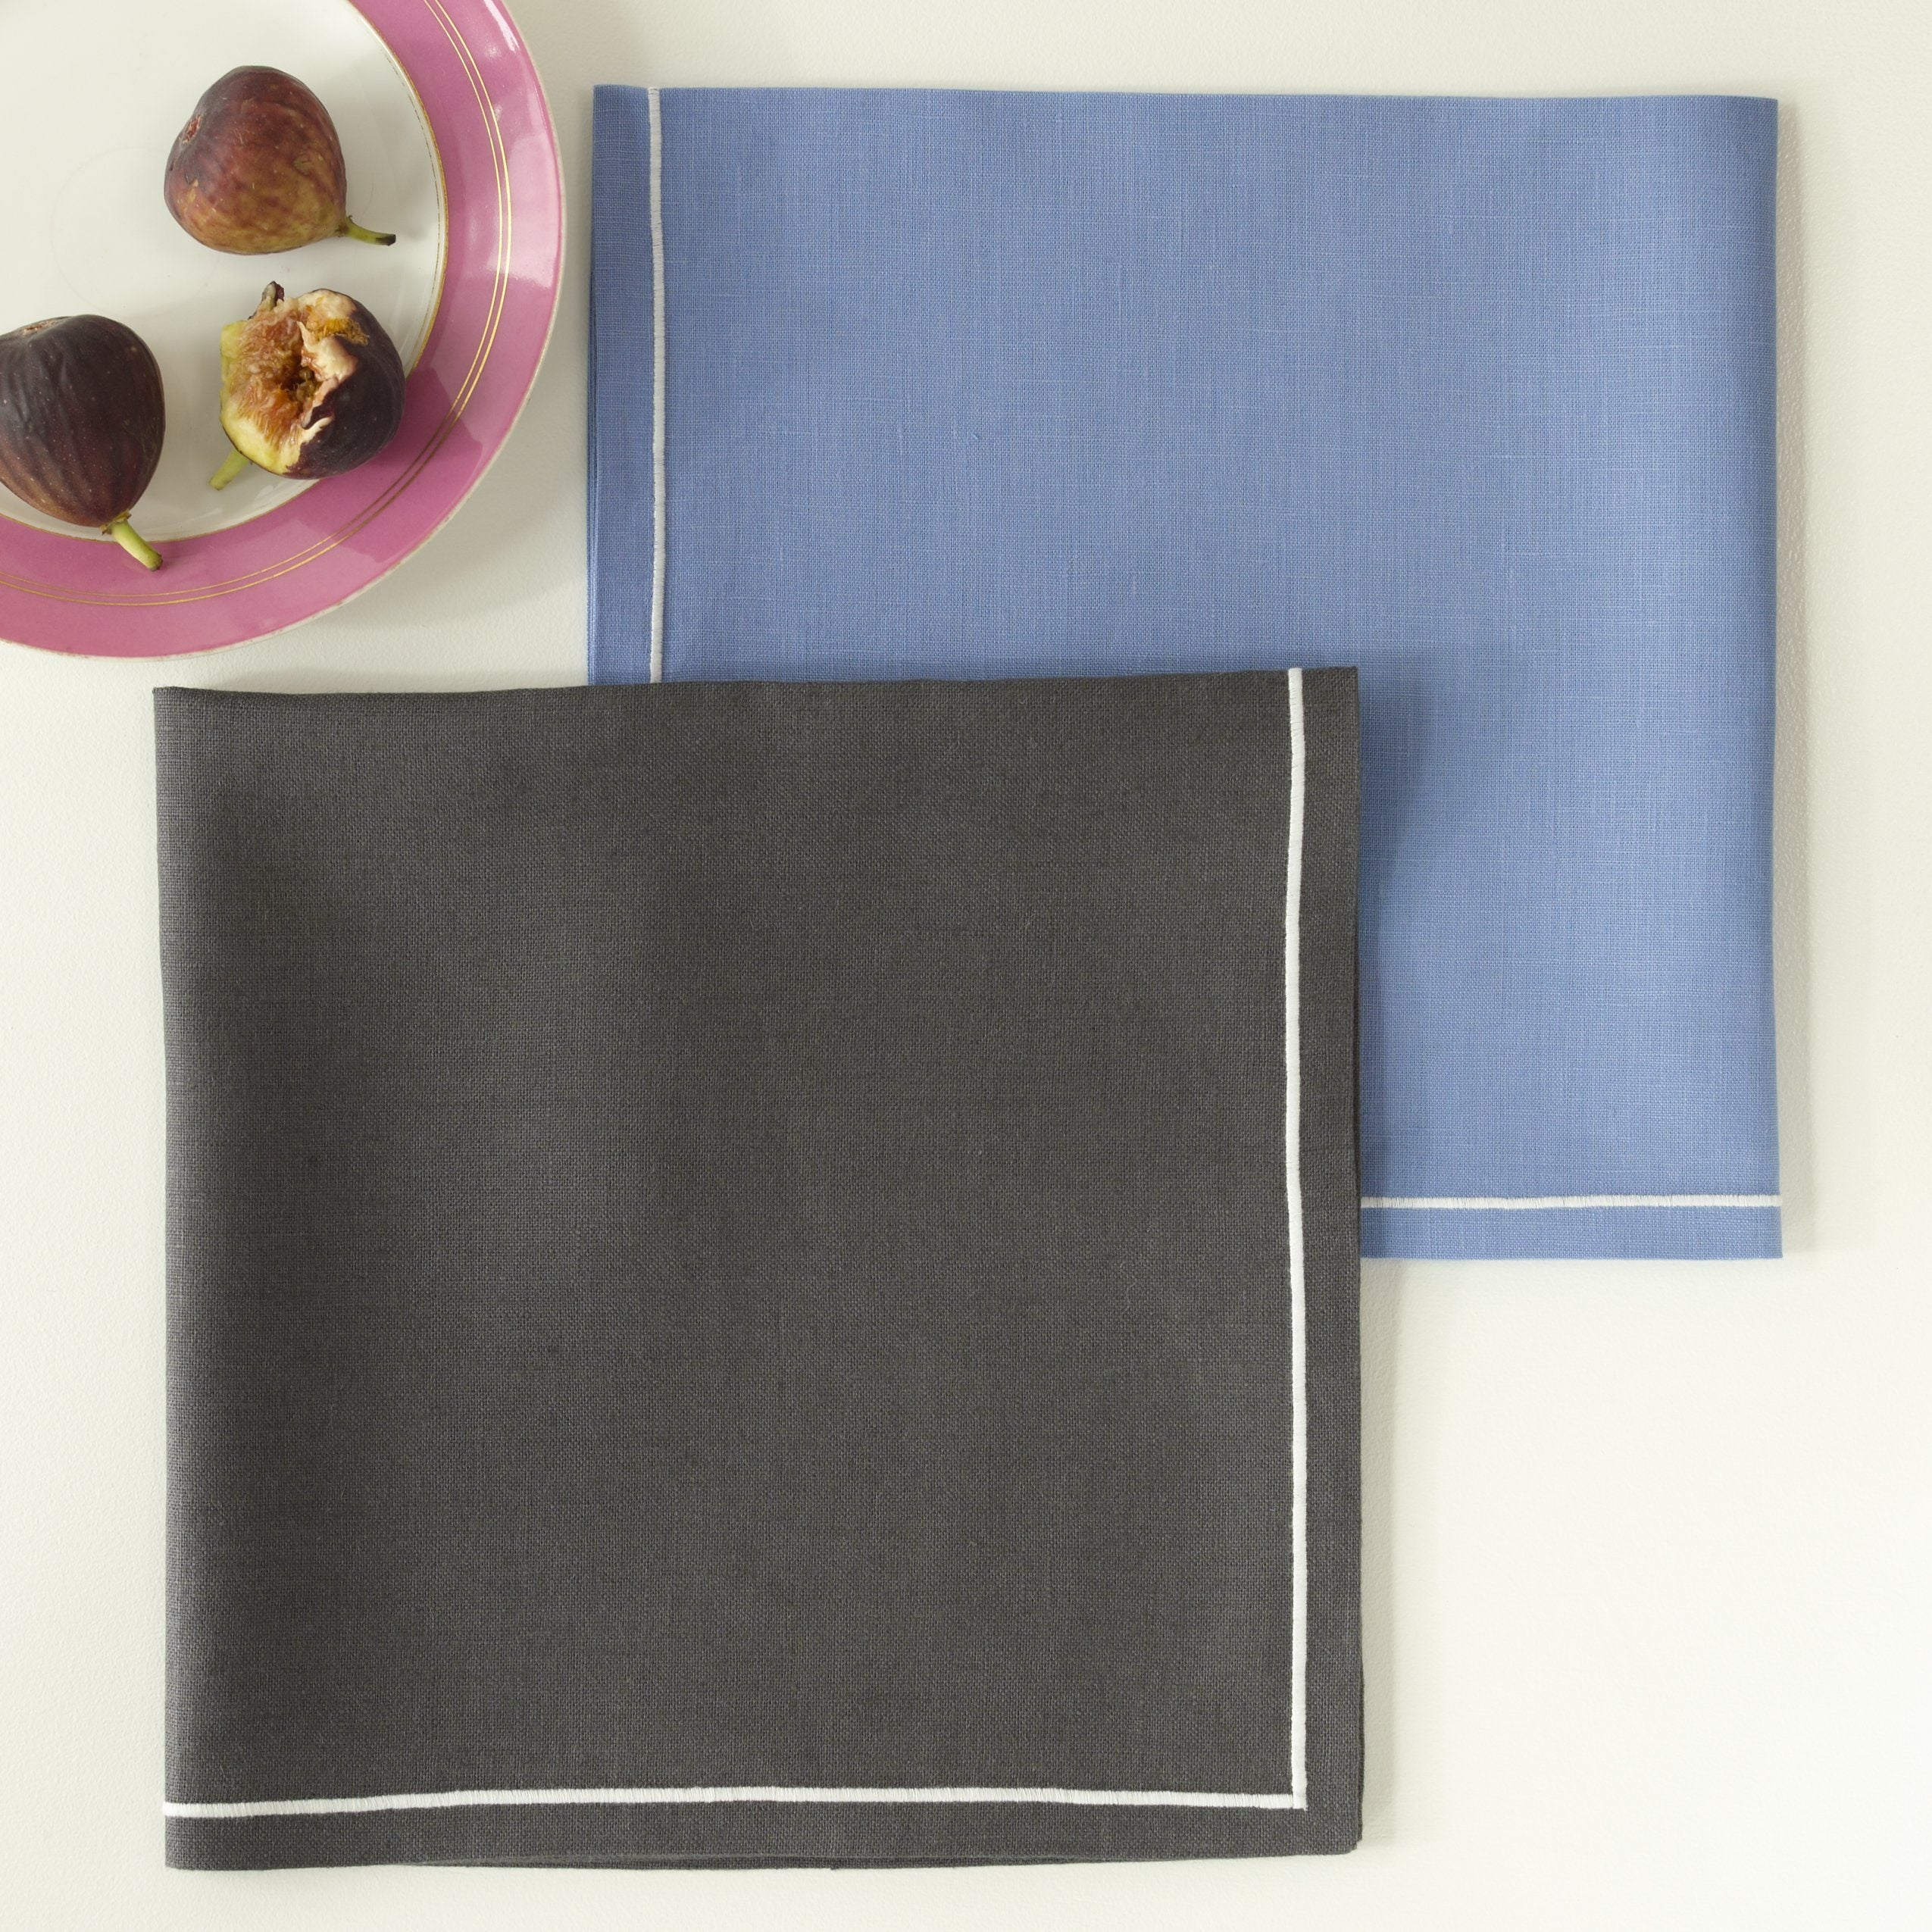 Casual Couture Placemats & Napkins by Matouk - Fig Linens and Home